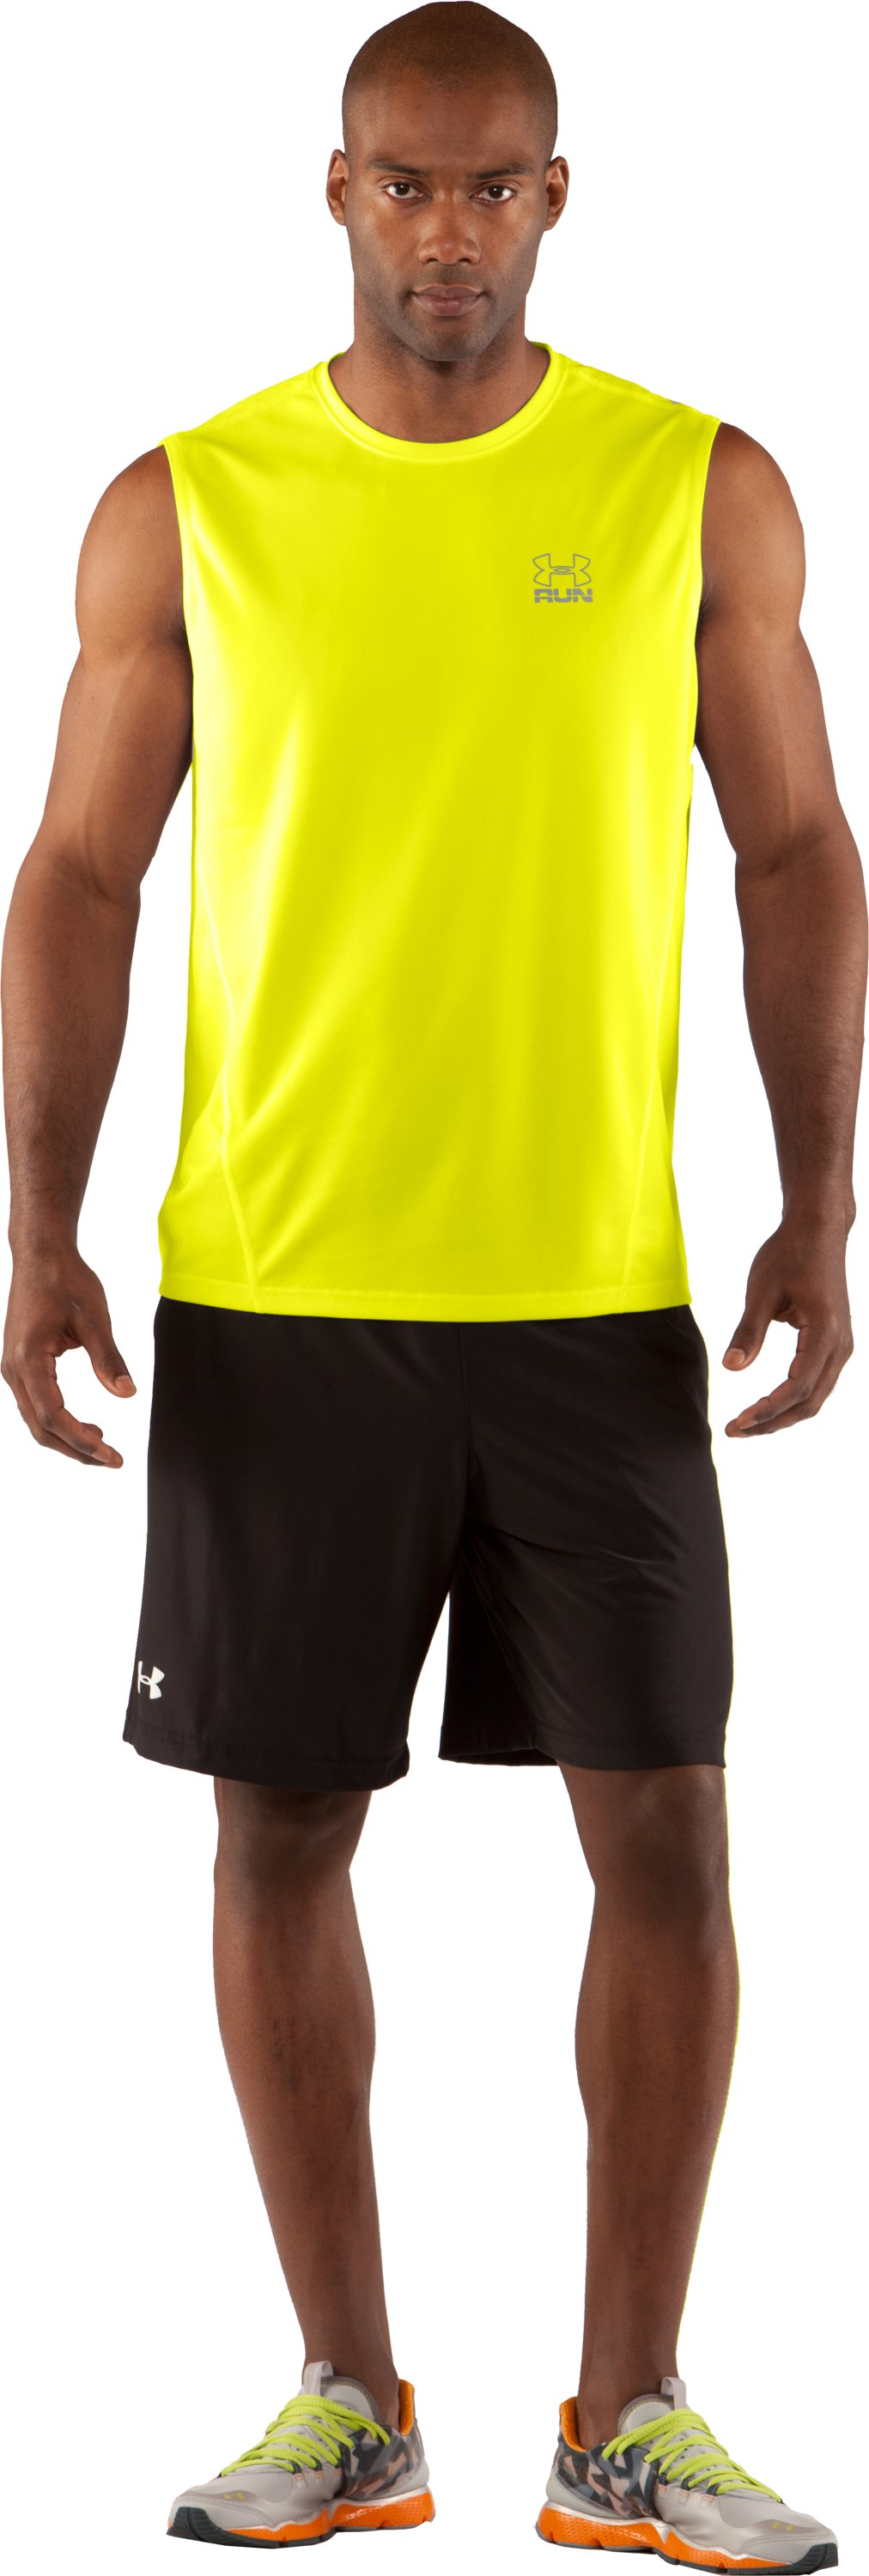 Men's UA Run HeatGear® Sleeveless T-Shirt, High-Vis Yellow, zoomed image